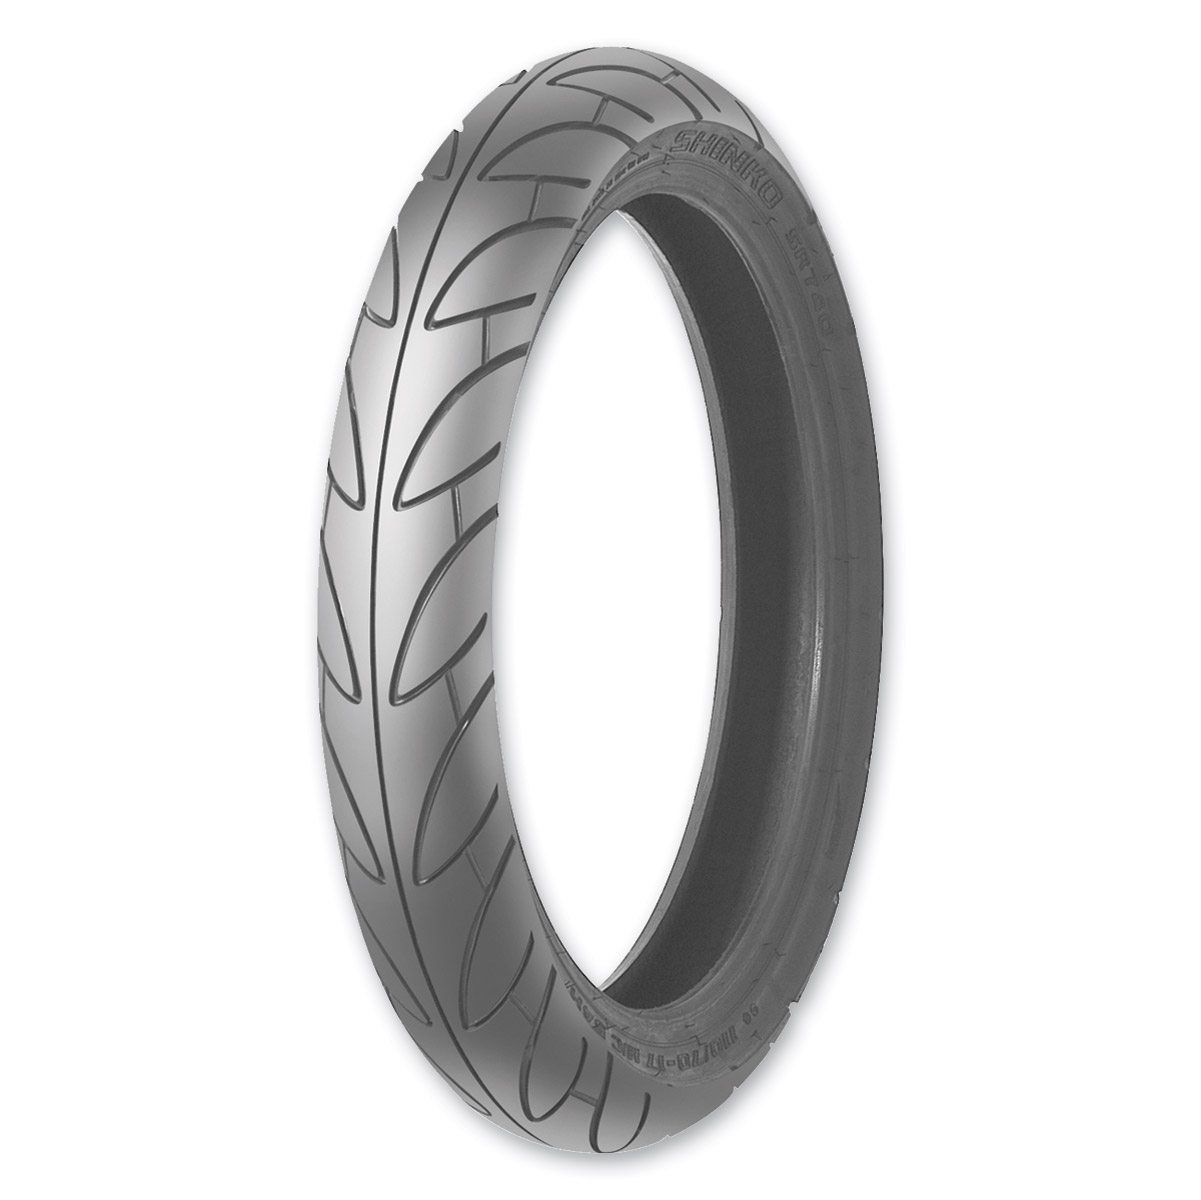 Shinko SR740 100/80-16 Front Tire